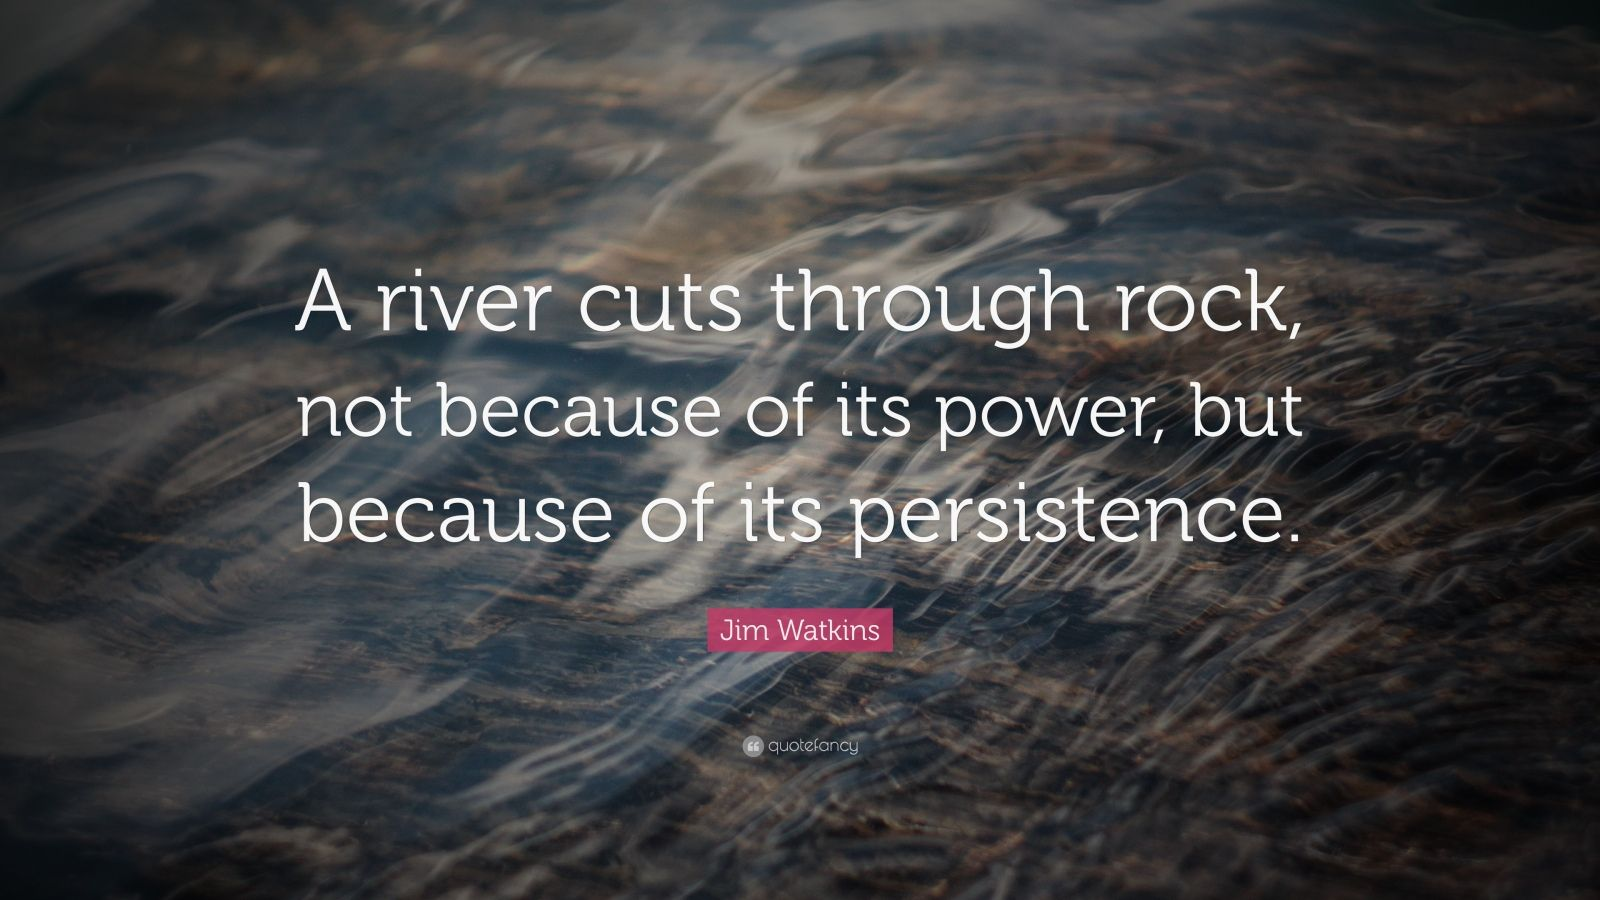 "Persistence Quotes: ""A river cuts through rock, not because of its power, but because of its persistence."" — Jim Watkins"